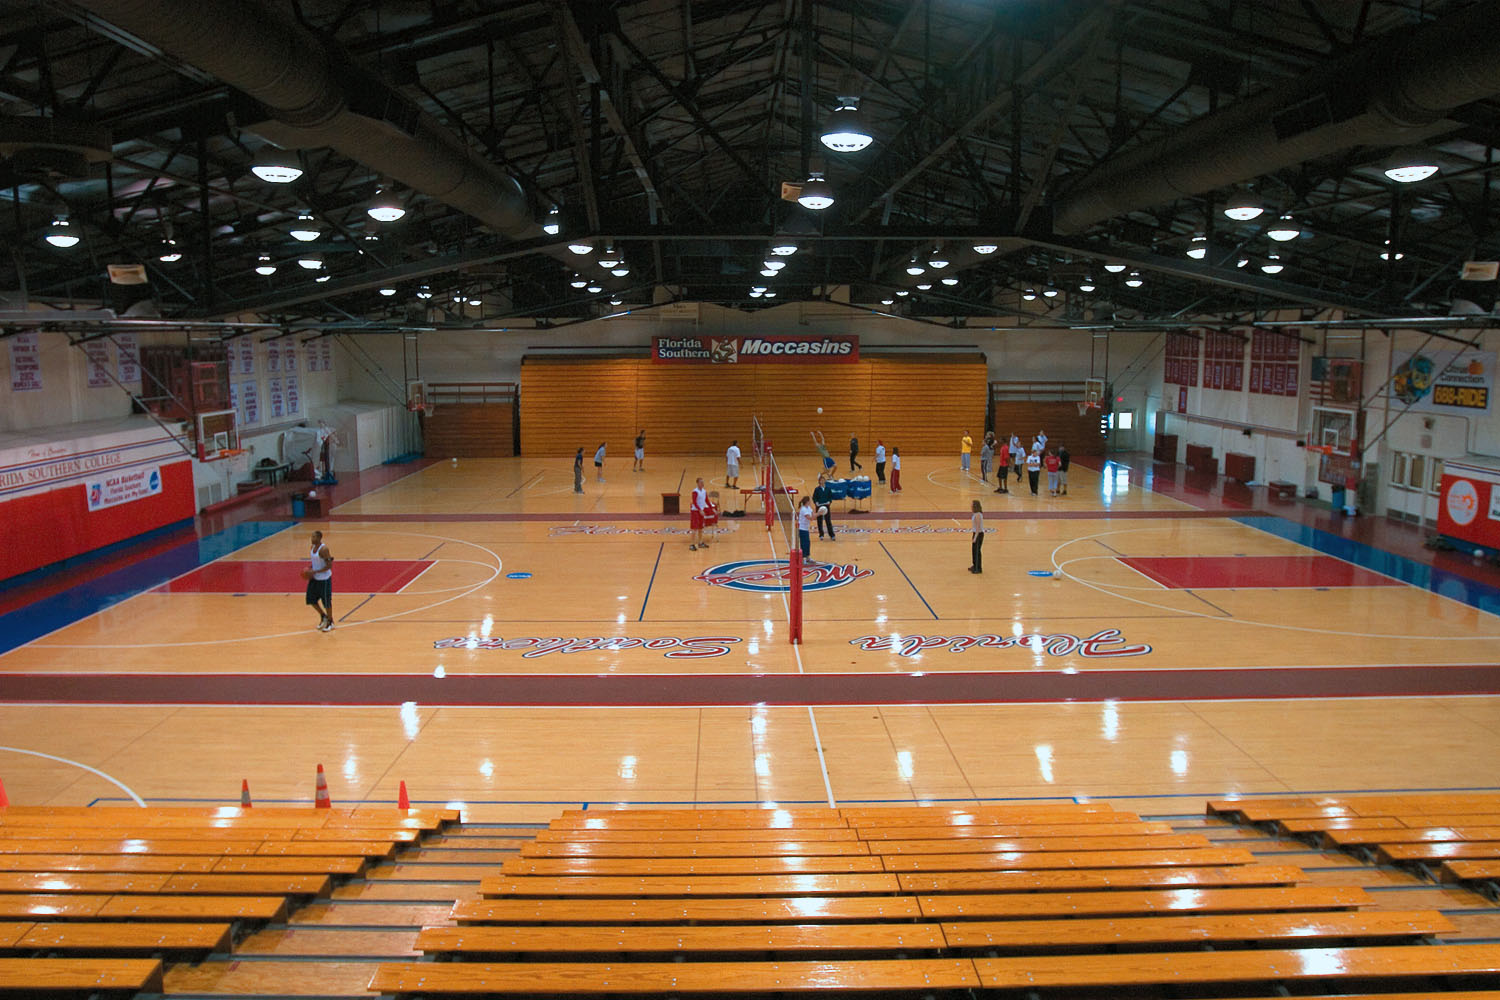 The George W. Jenkins Field House at Florida Southern